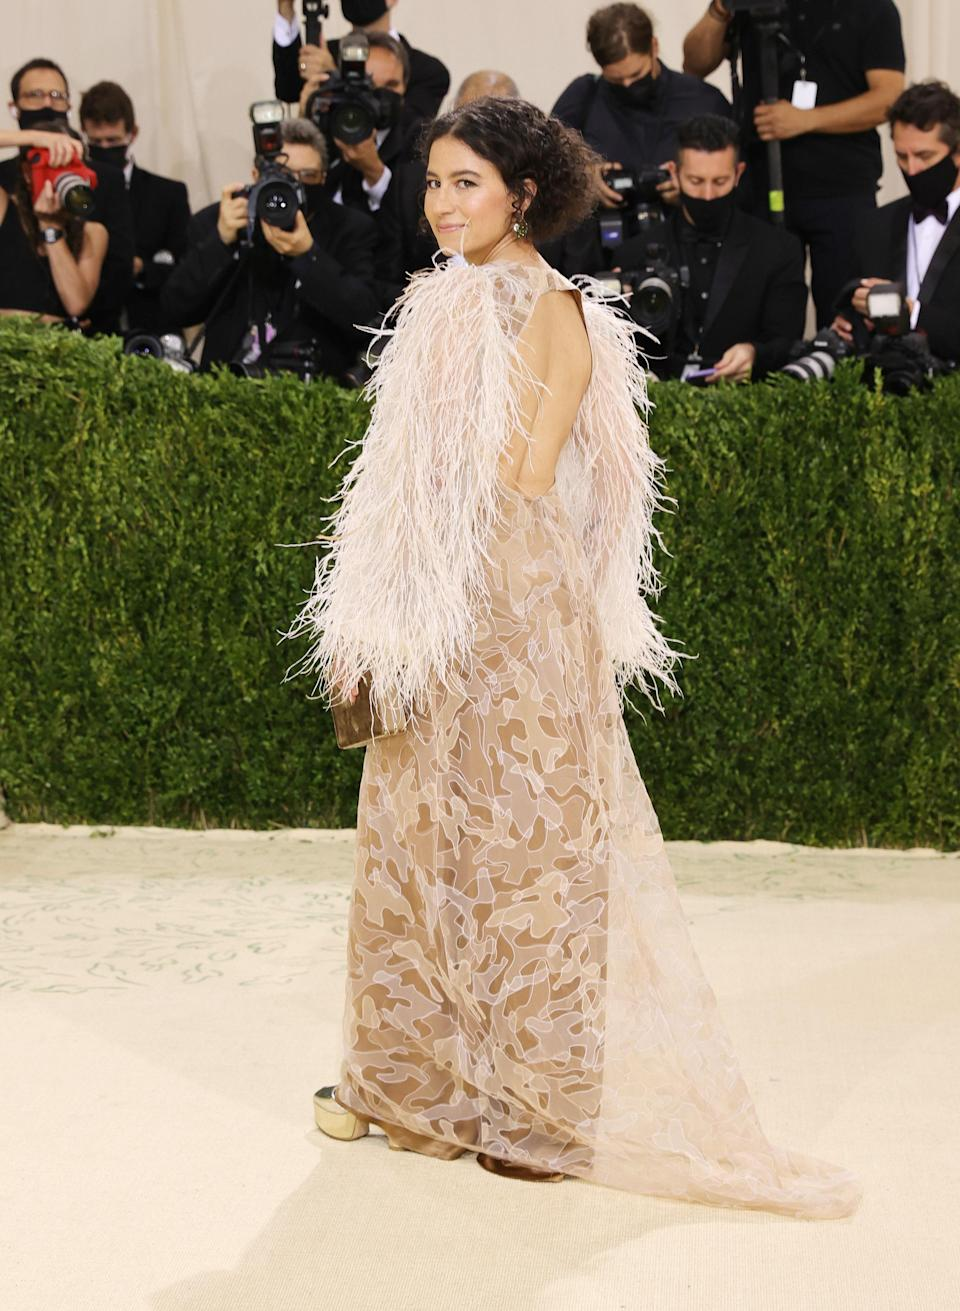 Met Gala red carpet host Ilana Glazer also wore an Aliétte gown, and looked nothing short of an ethereal dream in it.